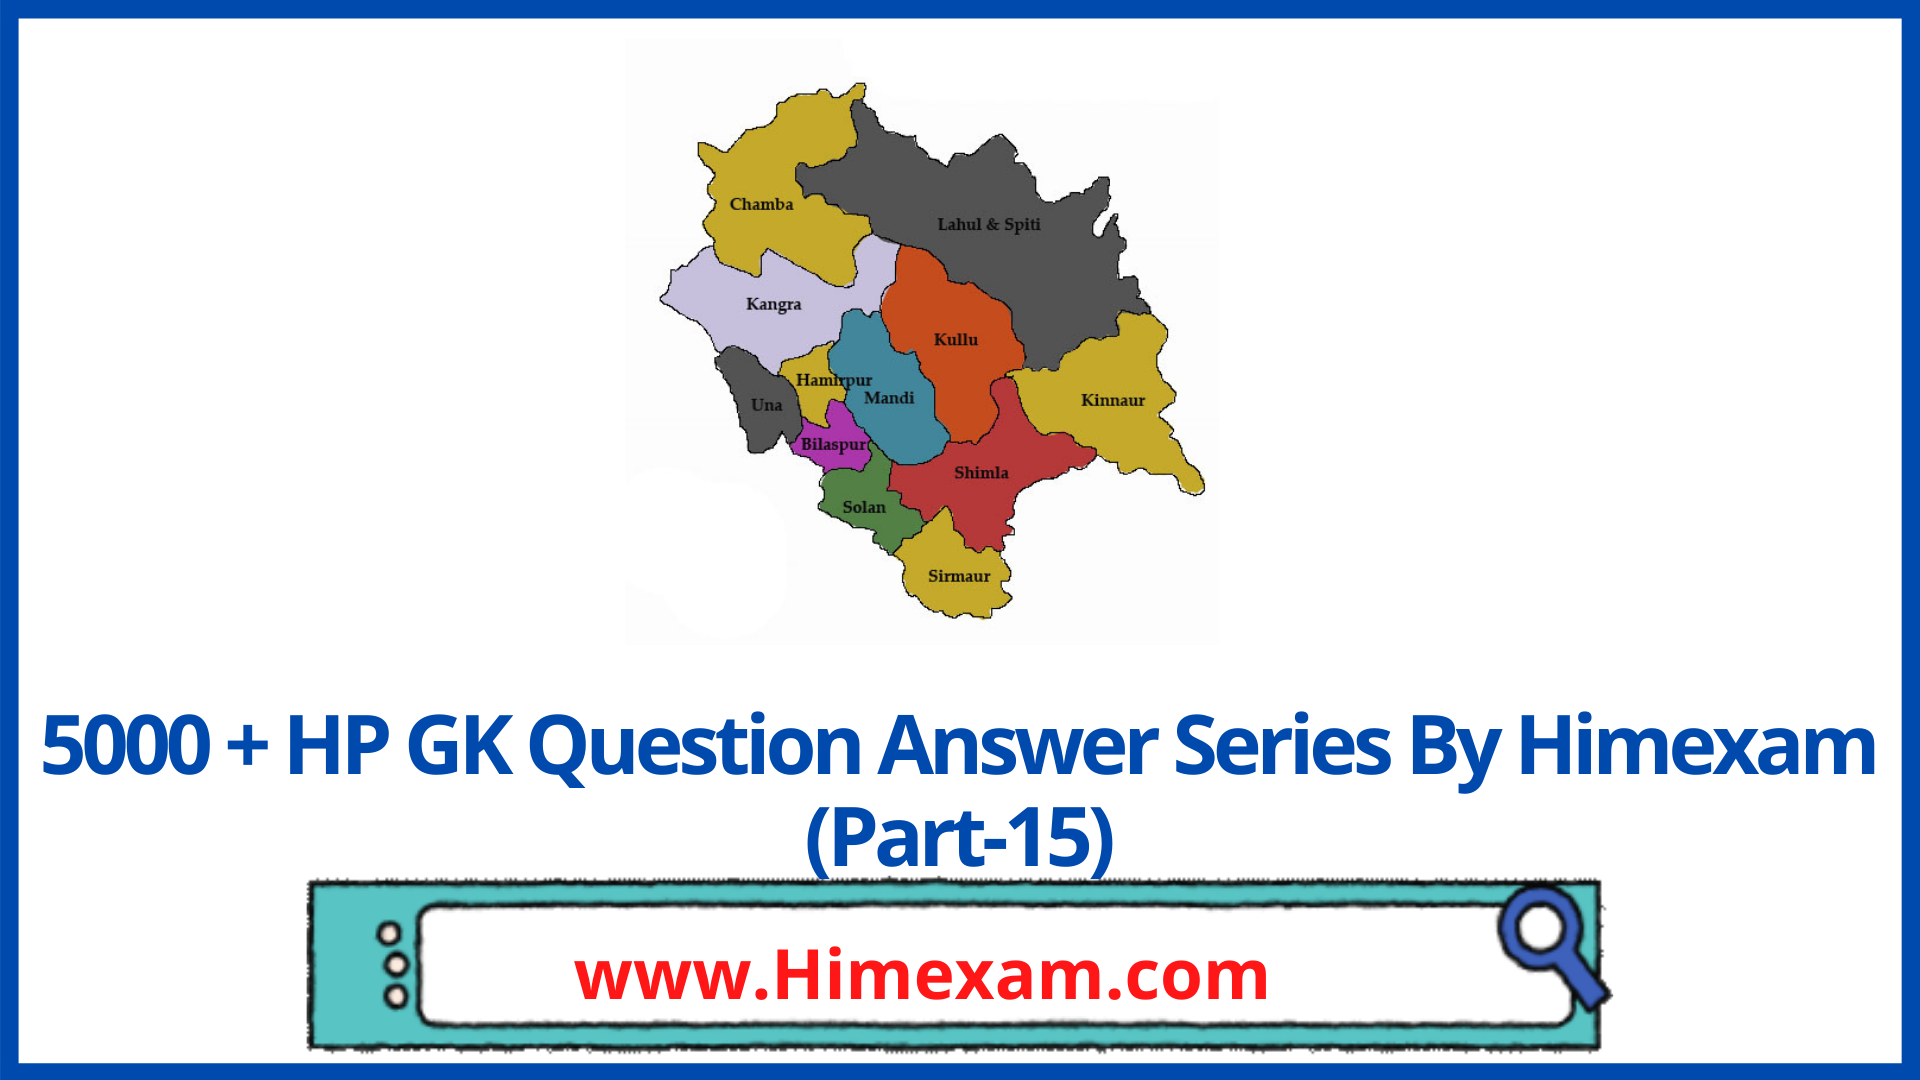 5000 + HP GK Question Answer Series By Himexam (Part-15)